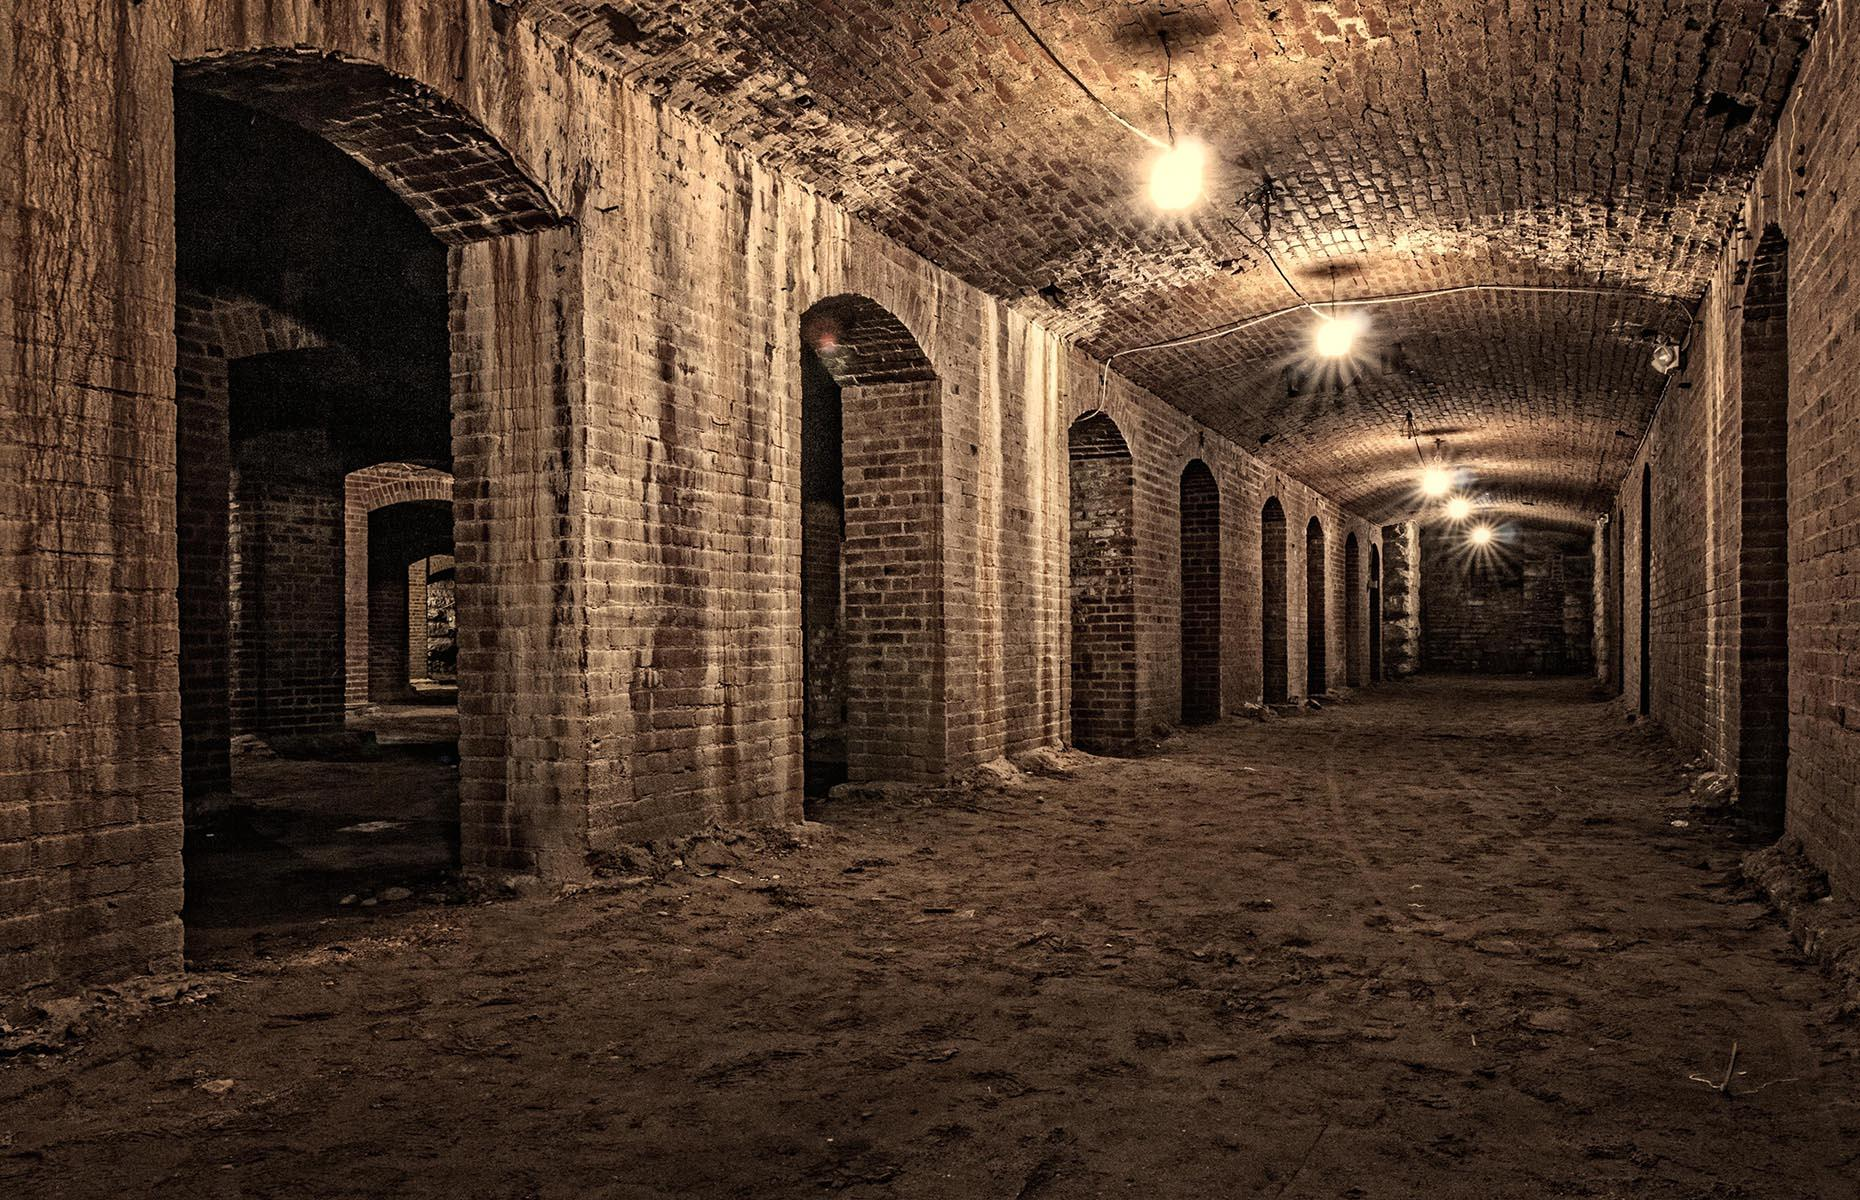 Slide 3 of 27: Delve beneath the buzzing cafés of City Market in Indianapolis and you'll find an eerily quiet network of catacombs, stretching for 22,000 square feet (2,044sqm). The limestone and brick arches and pillars were originally the basement of Tomlinson Hall, a vast municipal building that was demolished after a fire in 1958. Note that due to COVID-19, organized tours are limited and subject to change.